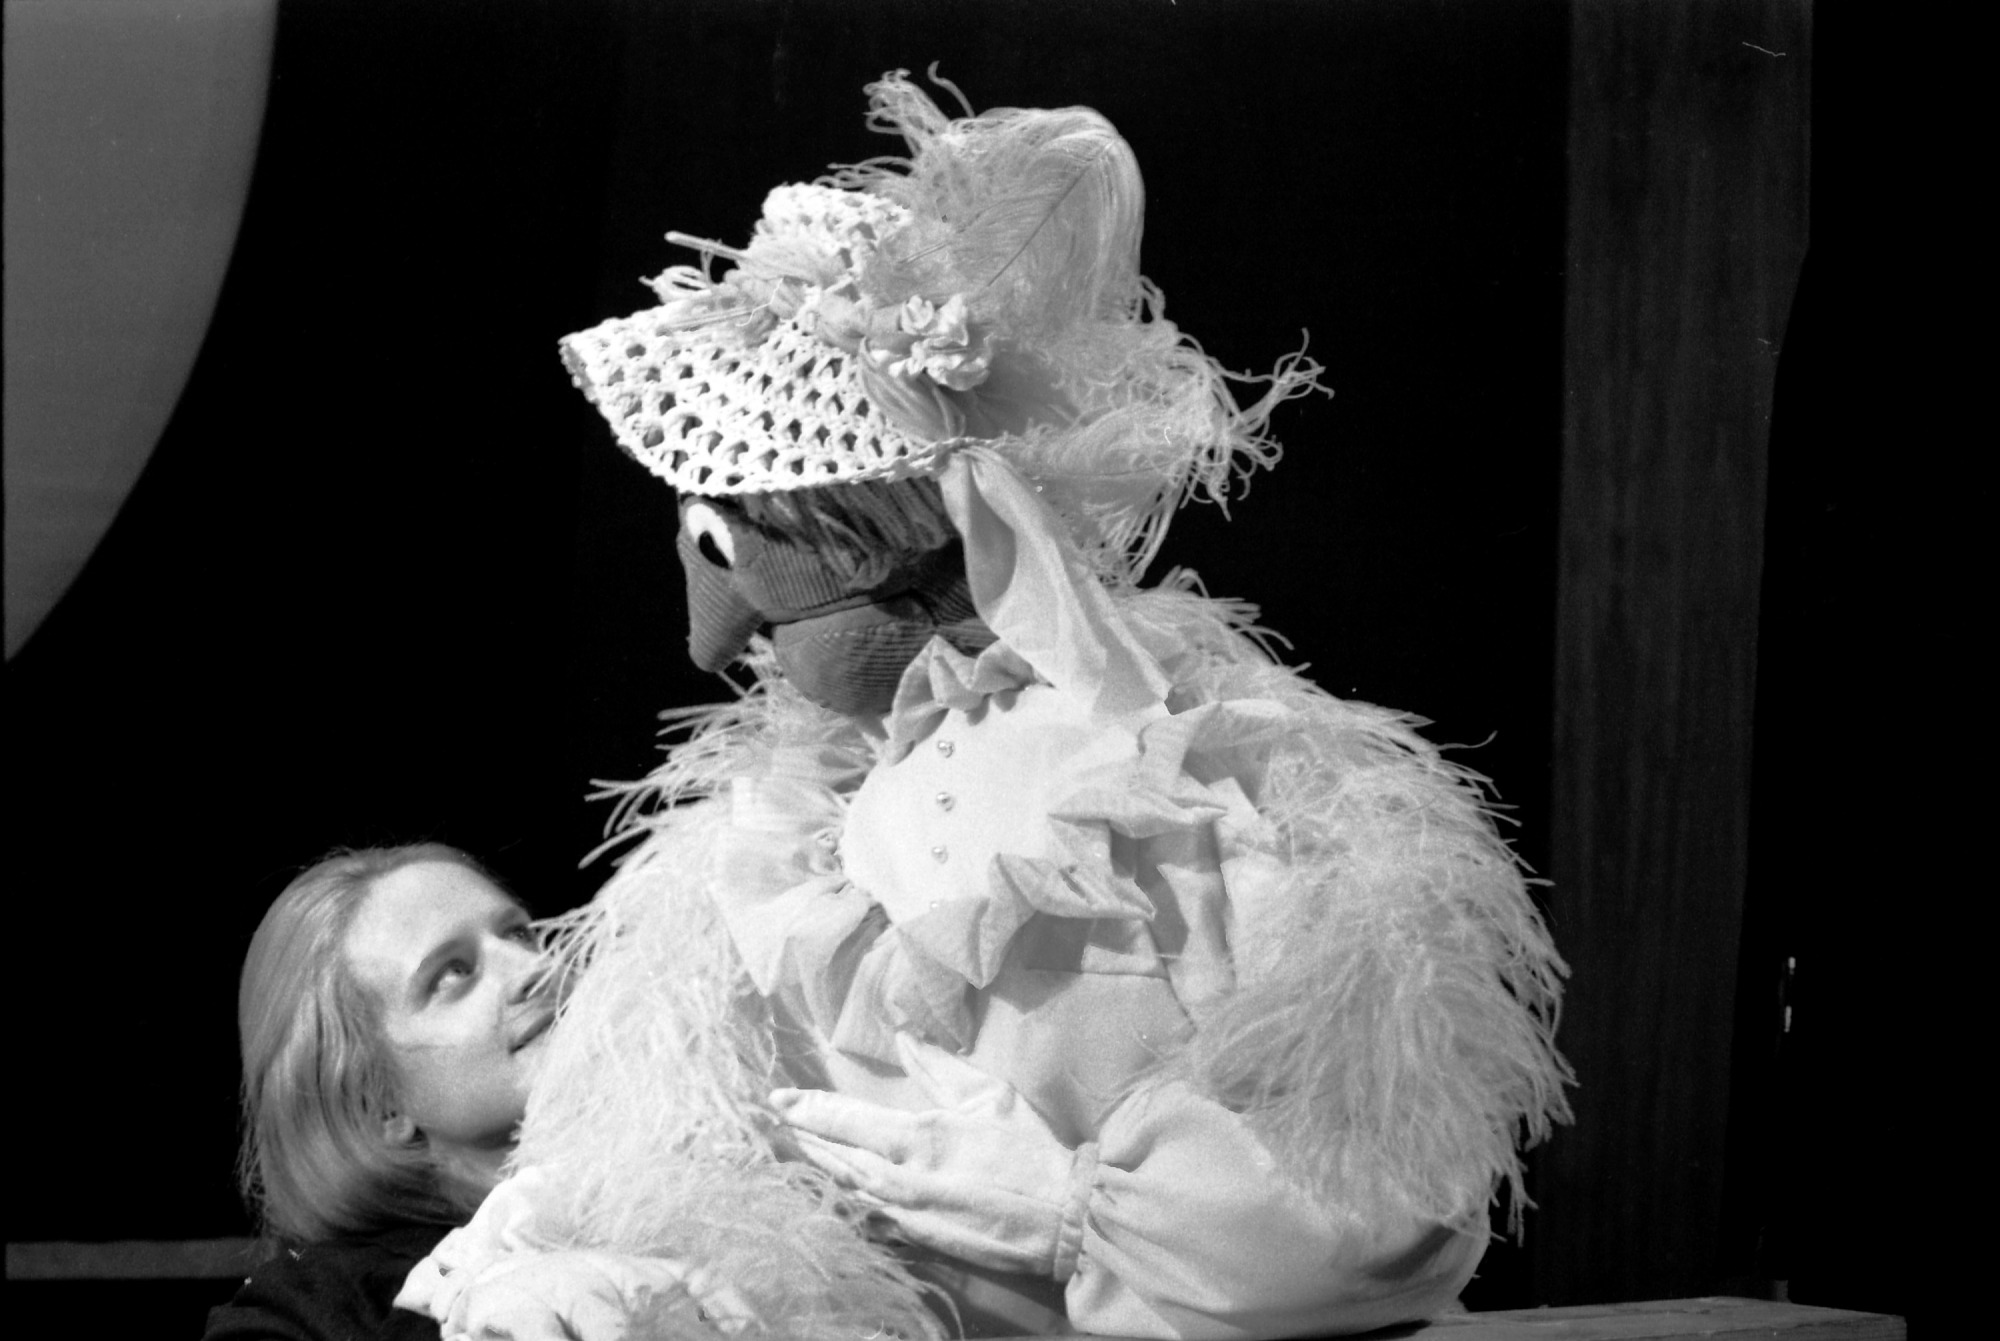 Puppet Theater, 1972, Smithsonian Institution Archives, SIA Acc. 11-009 [72-8376-07].